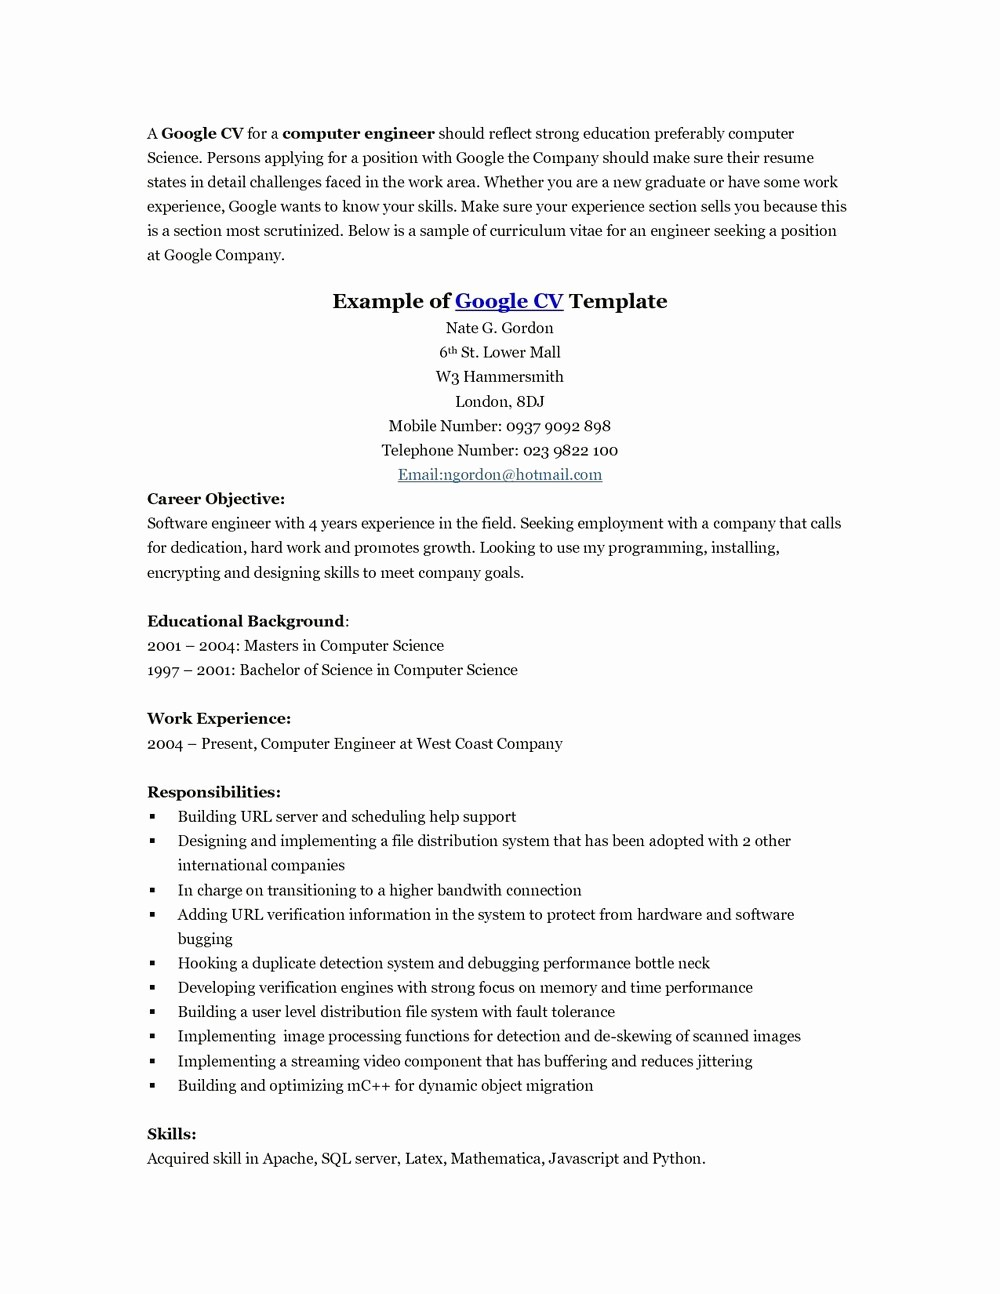 Resume Cover Letter Template Free Fresh Resume Cover Letter Template Free Download Cover Letters